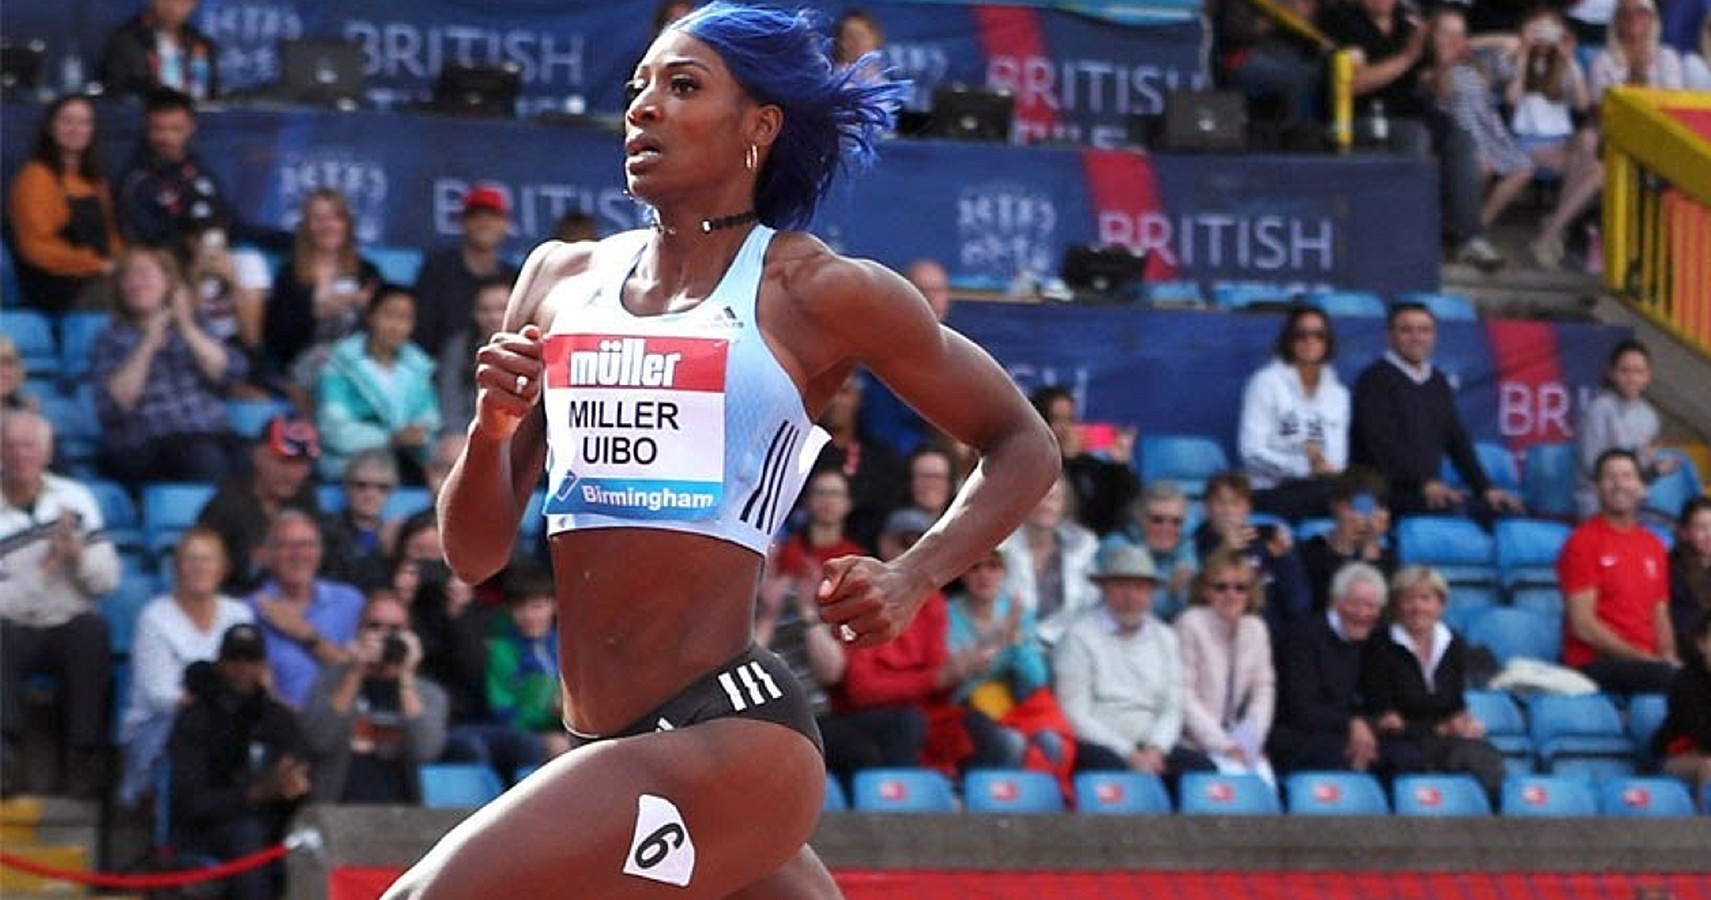 Shaunae Miller-Uibo of Bahamas in the 200m